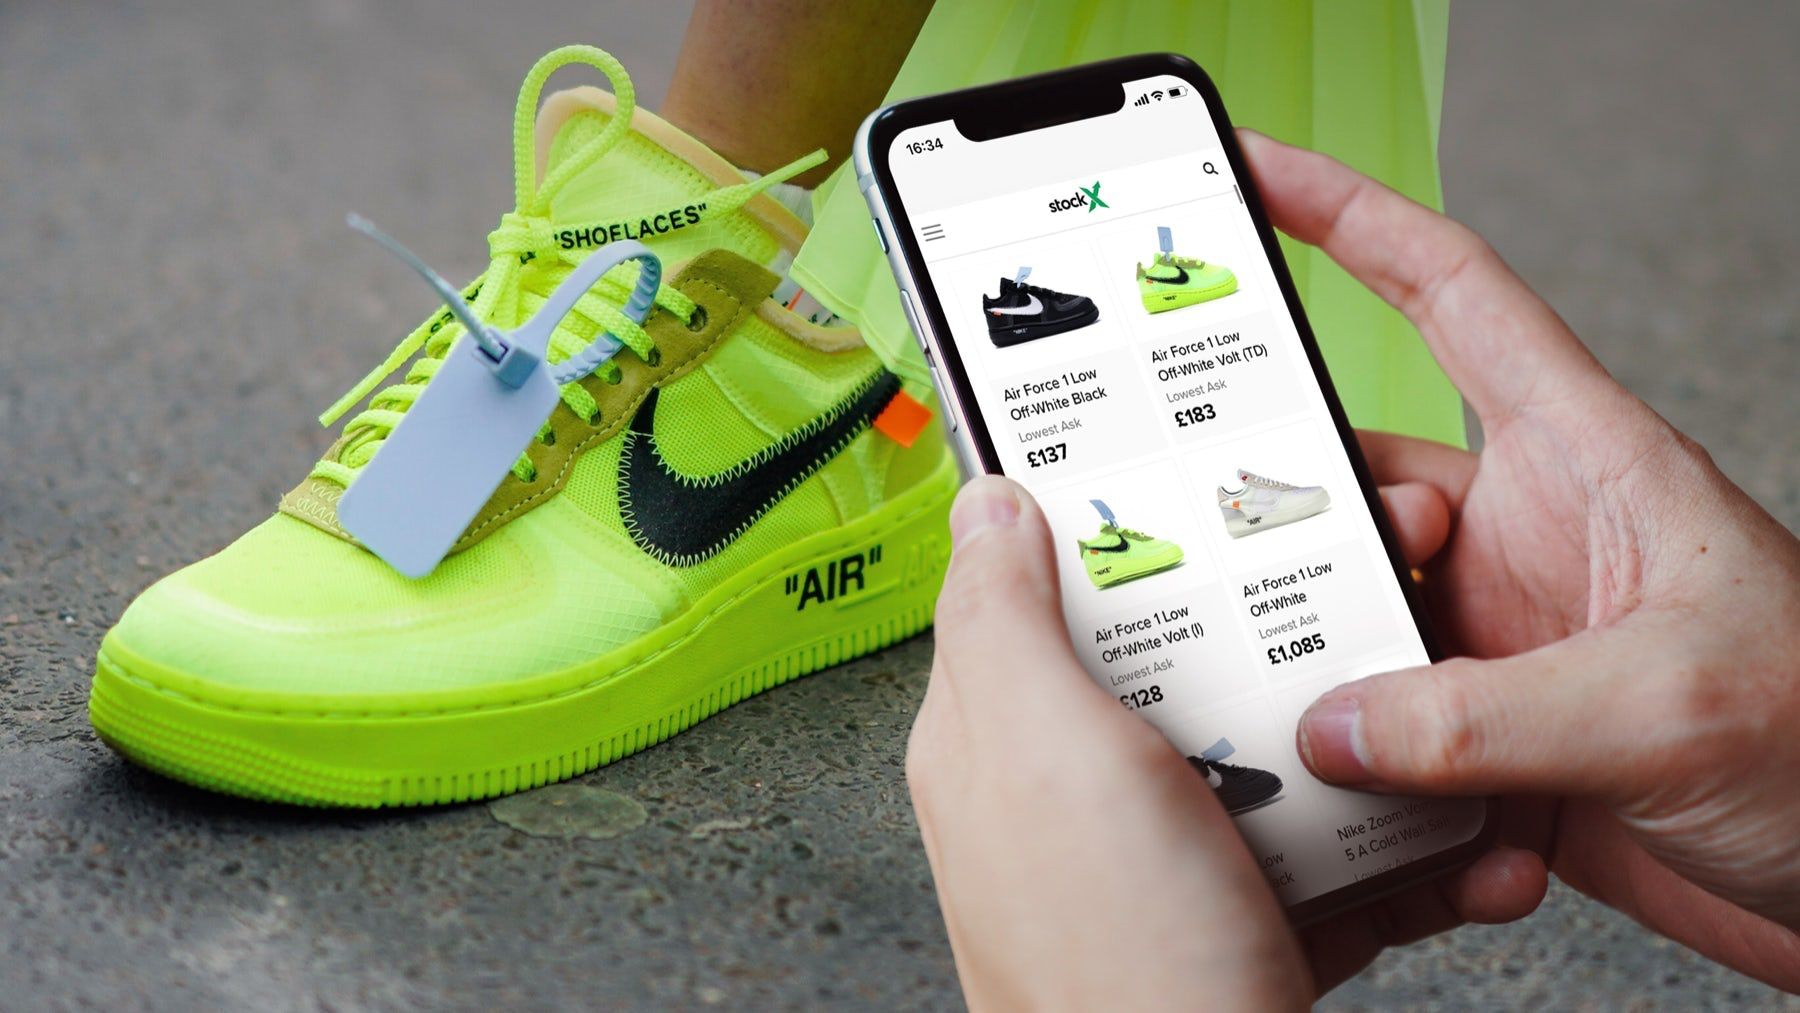 Nike Air Force 1 Low Off-White Volt. Getty Images.